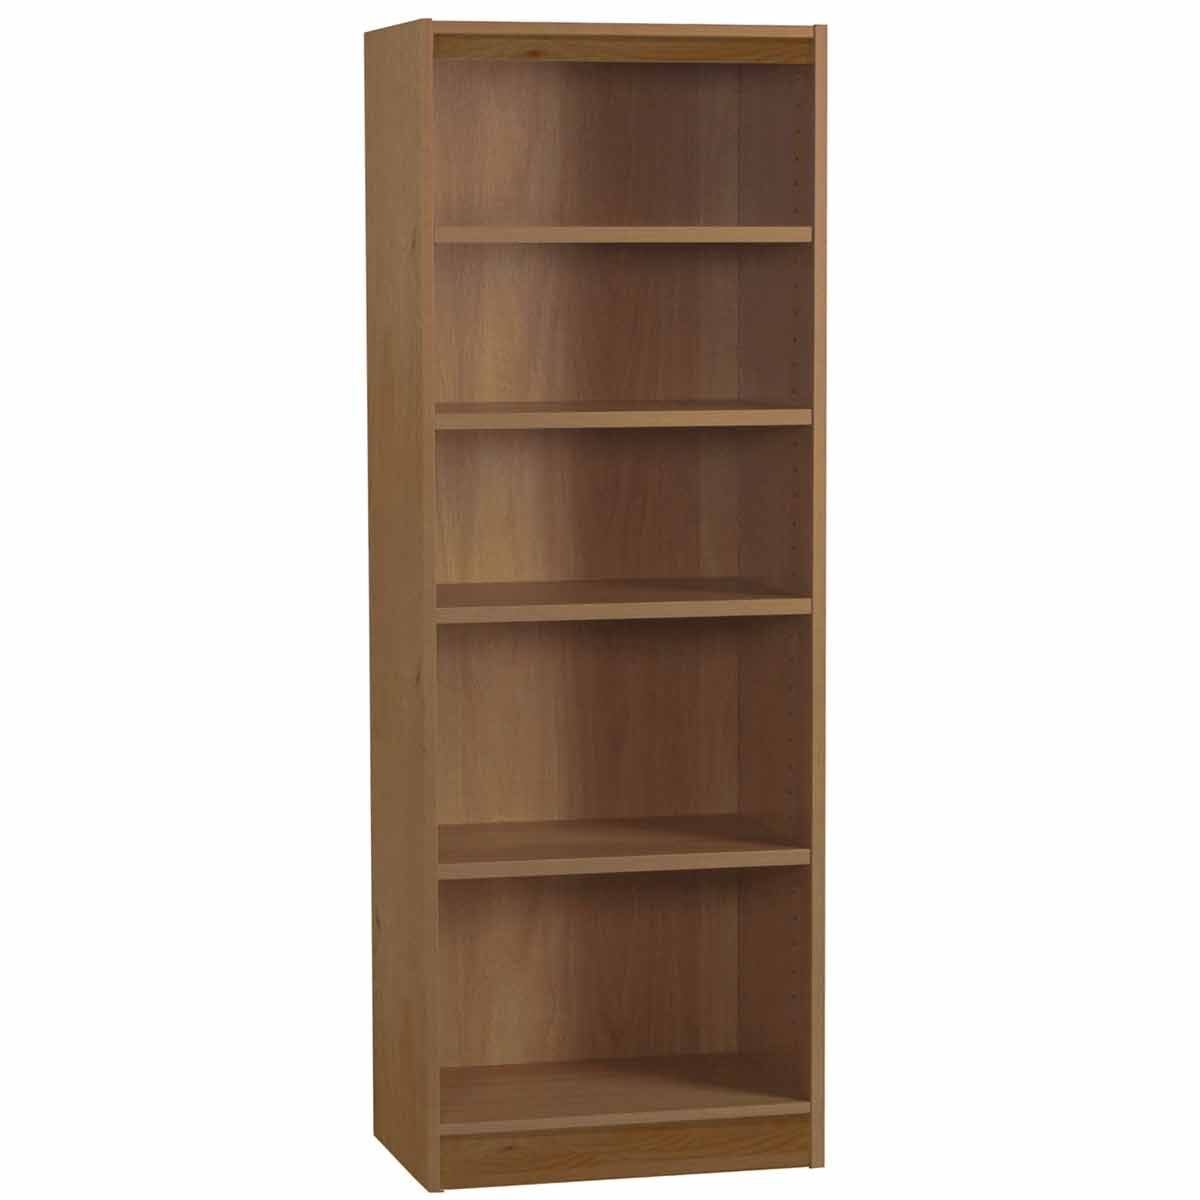 R White Tall Bookcase 600mm Wide English Oak